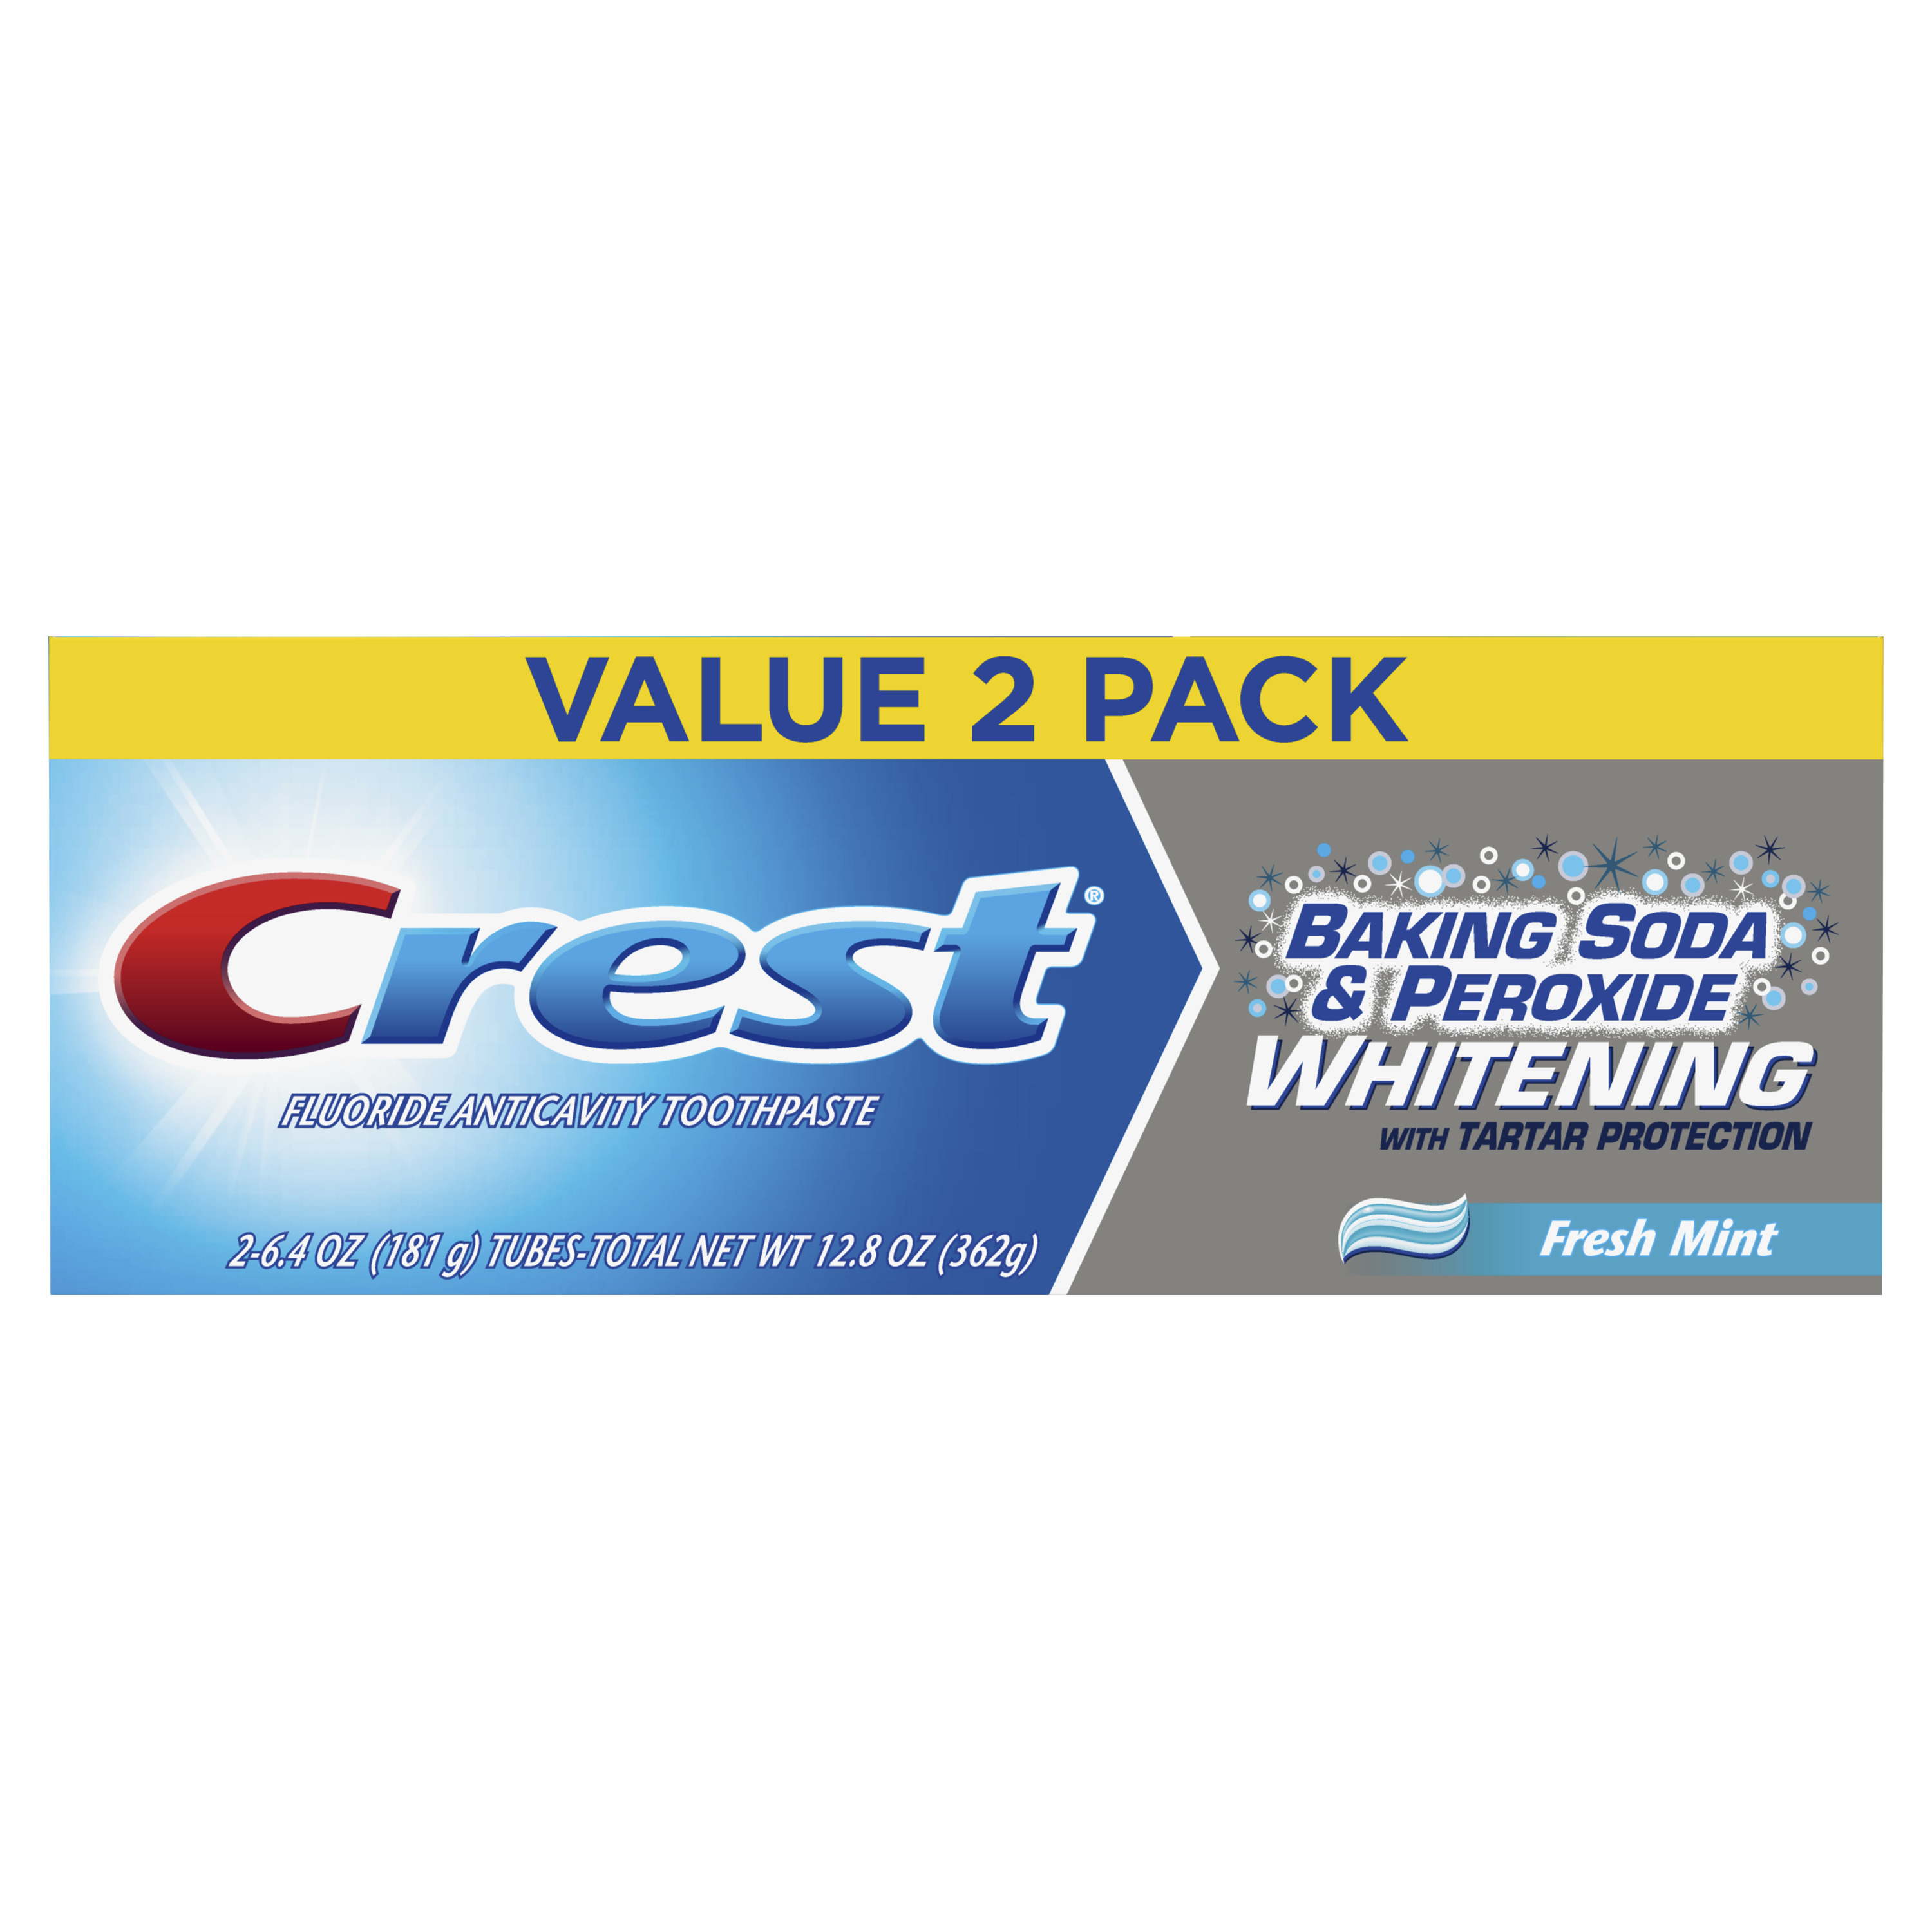 Crest Baking Soda & Peroxide Whitening with Tartar Protection Toothpaste, Fresh Mint, 6.4 oz., Pack of 2